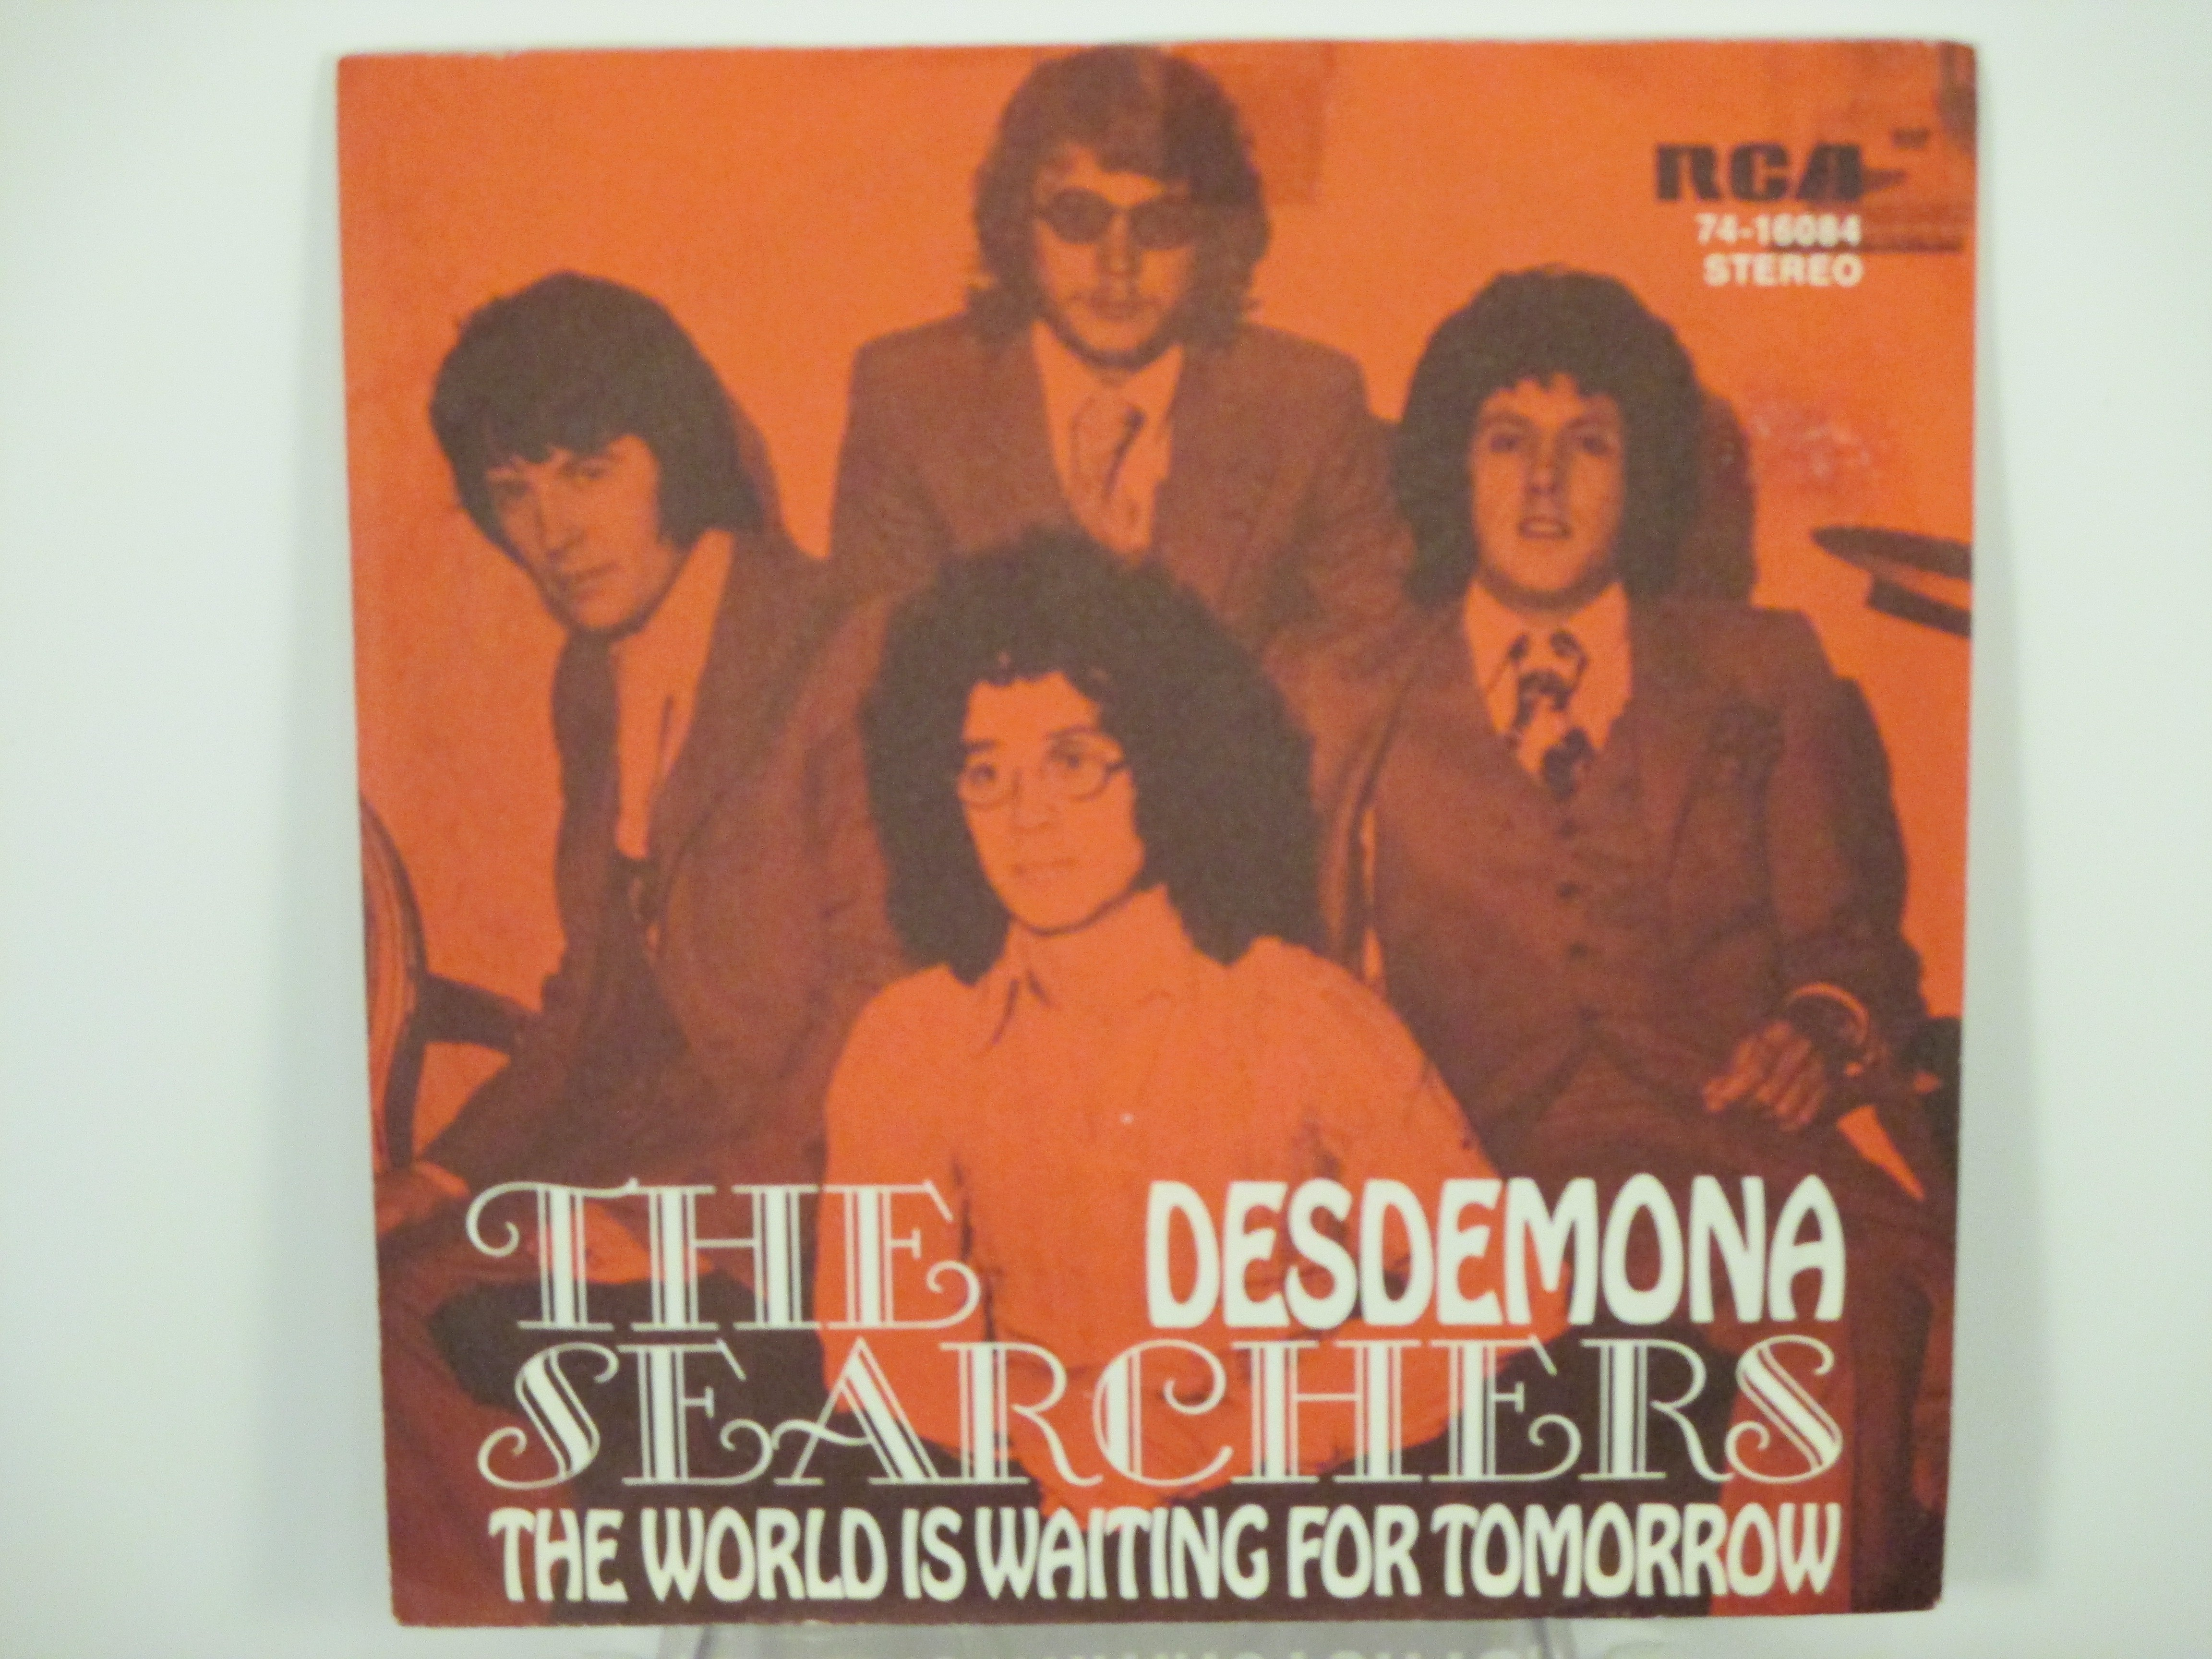 SEARCHERS : Desdemona / The world is waiting for tomorrow